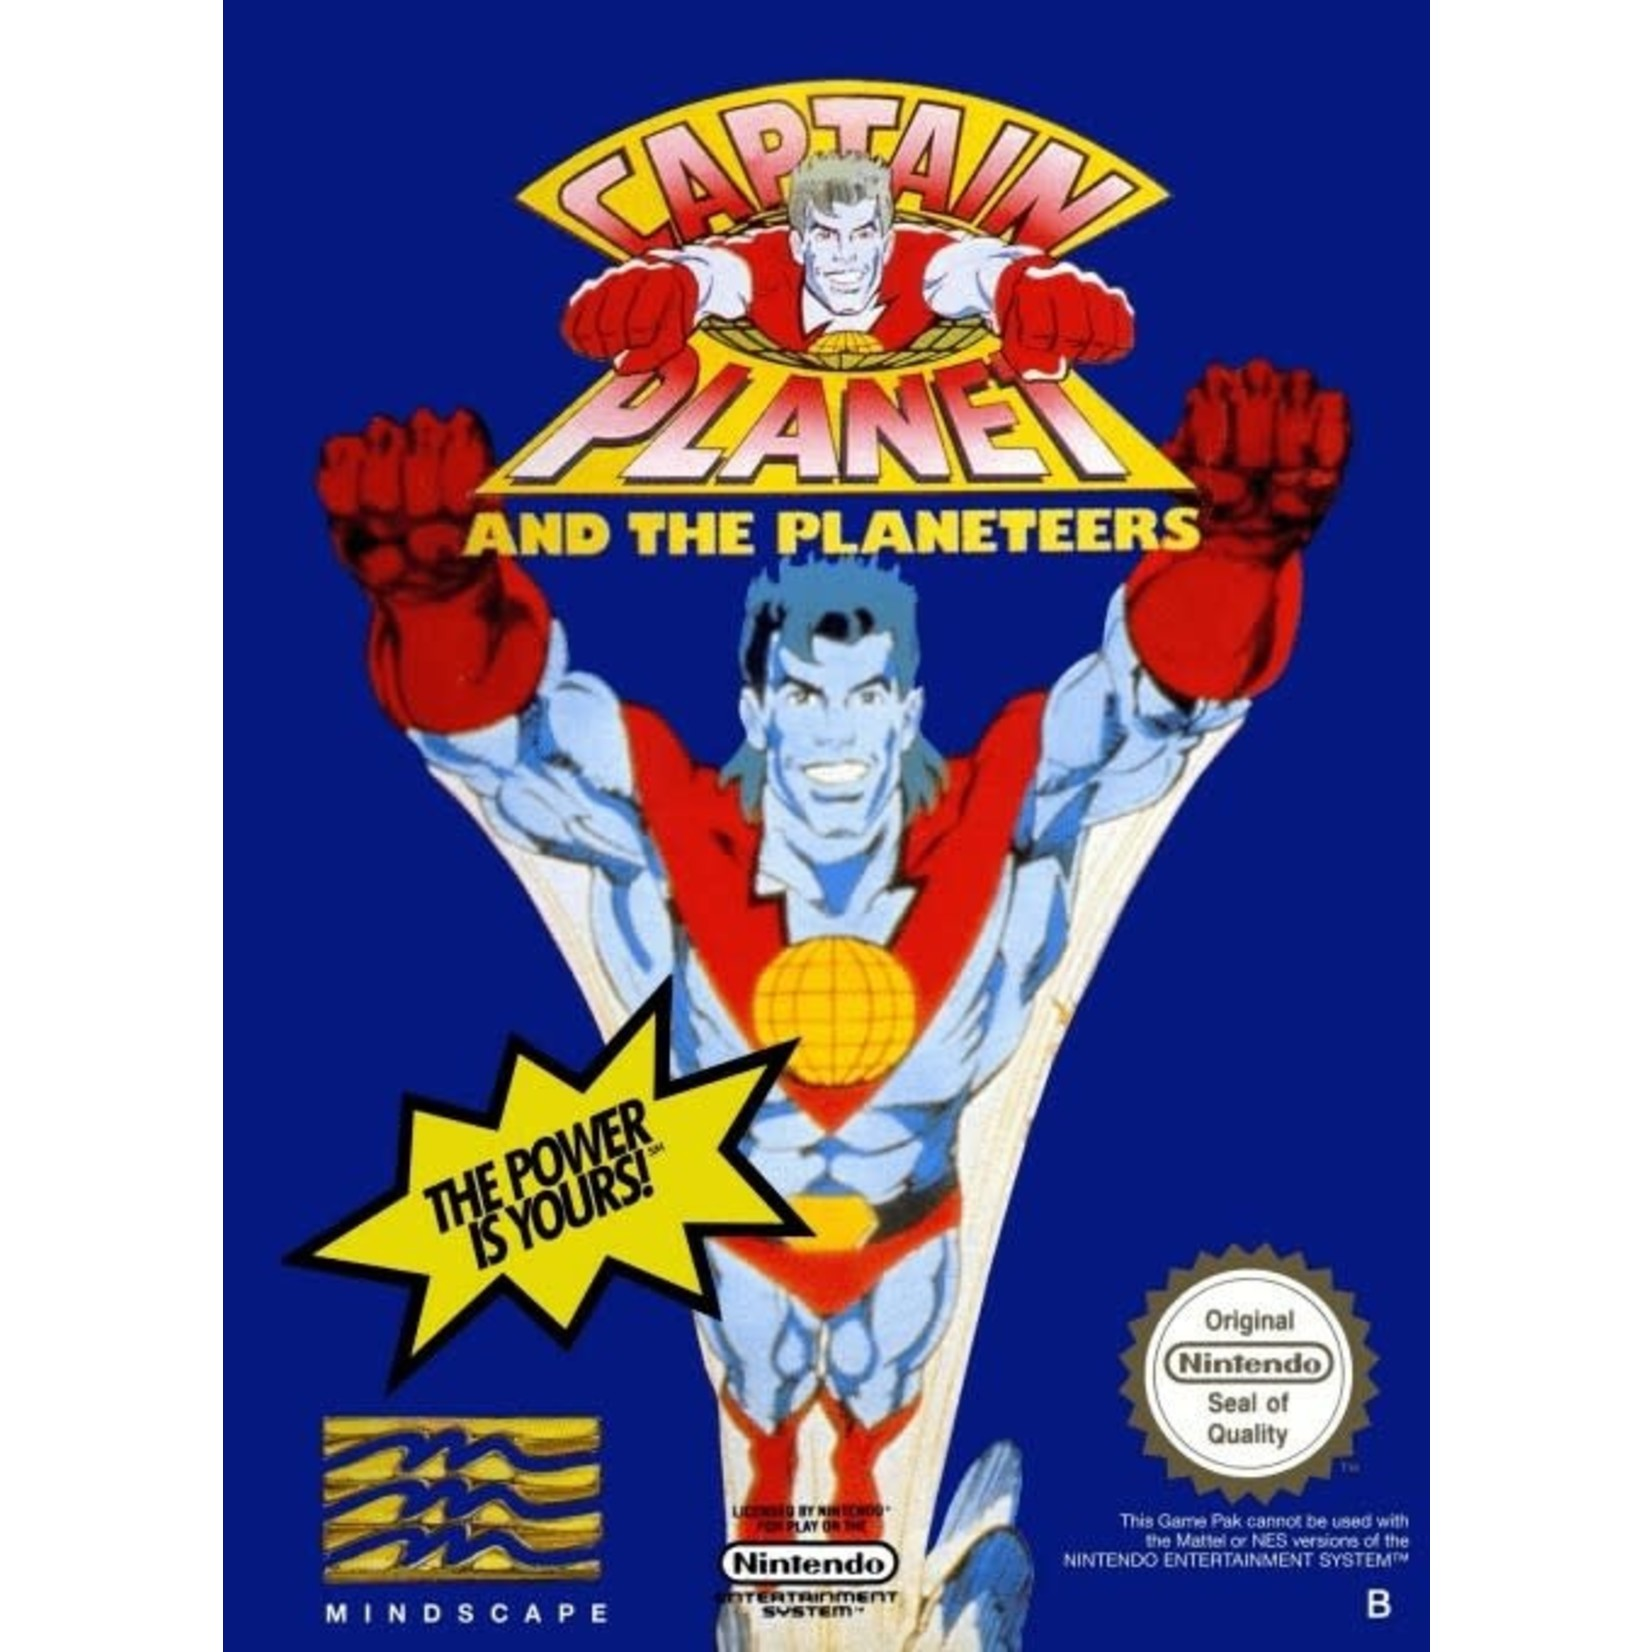 NESU-Captain Planet And The Planeteers (Complete)